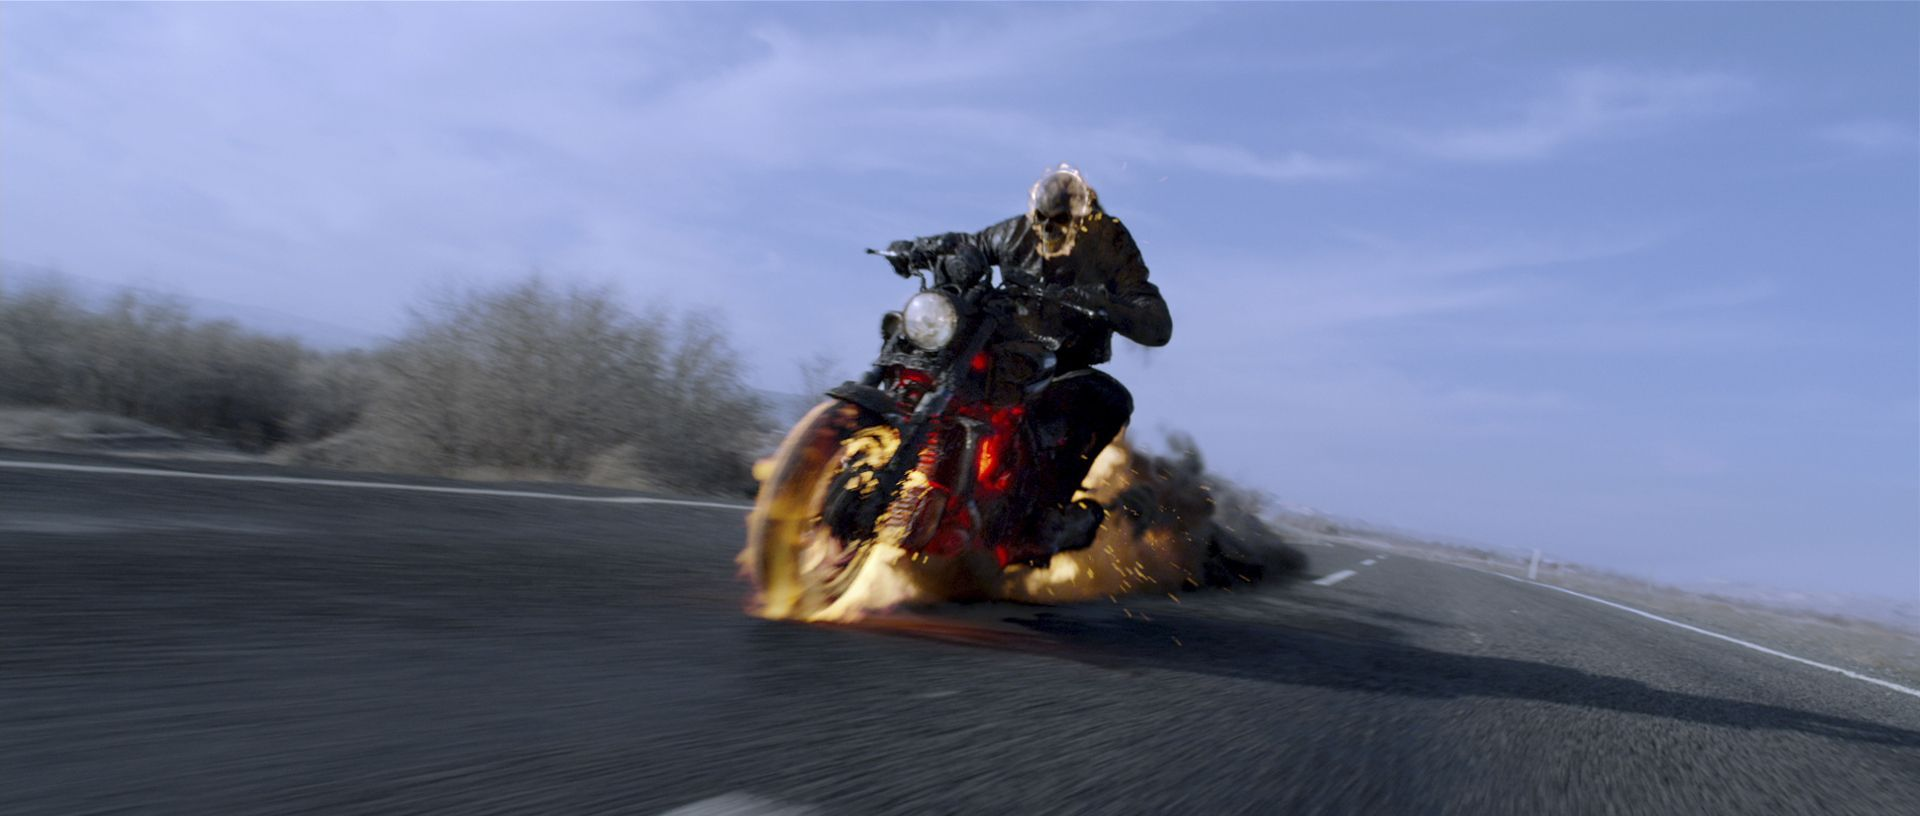 ghost rider 2 wallpapers - sf wallpaper